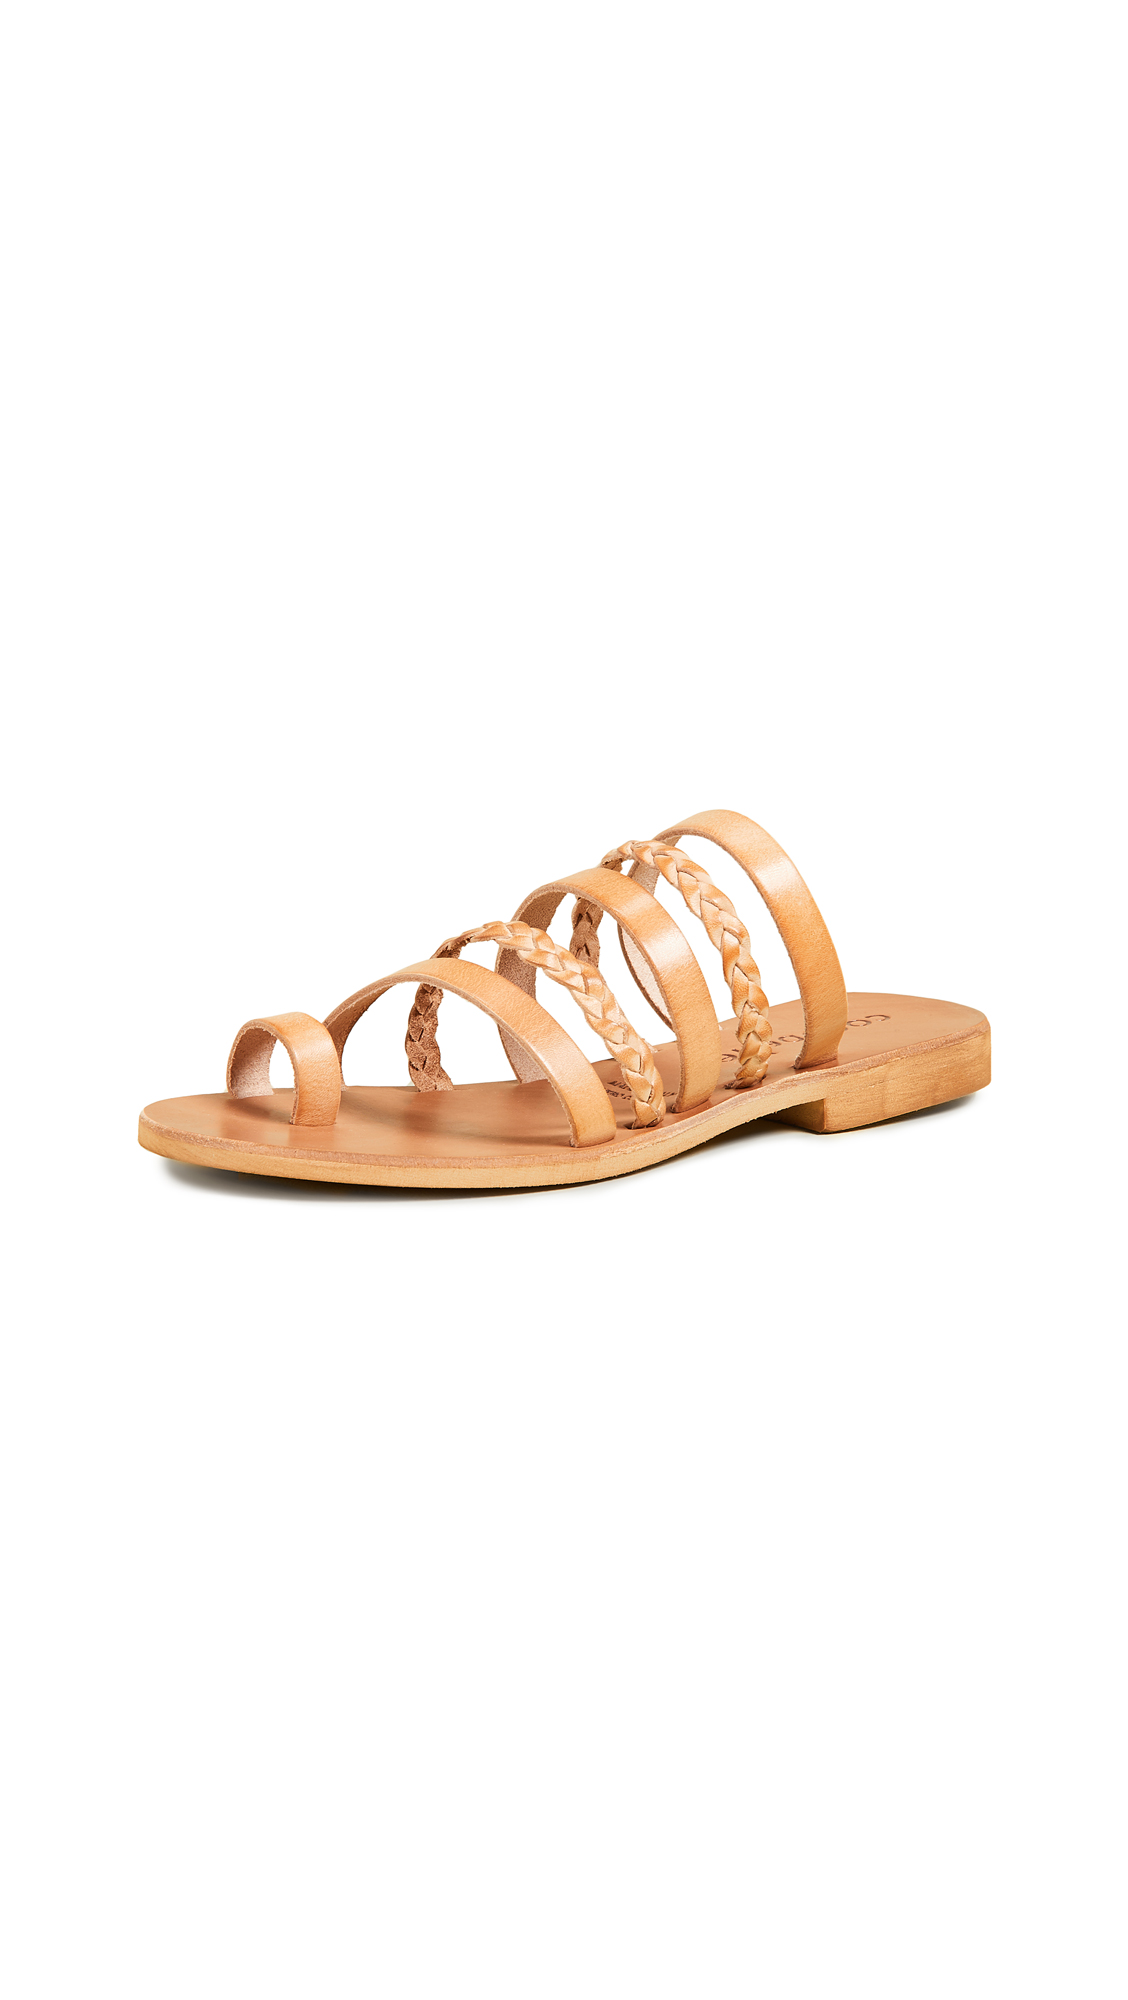 Cocobelle Liv Strappy Sandals - Natural